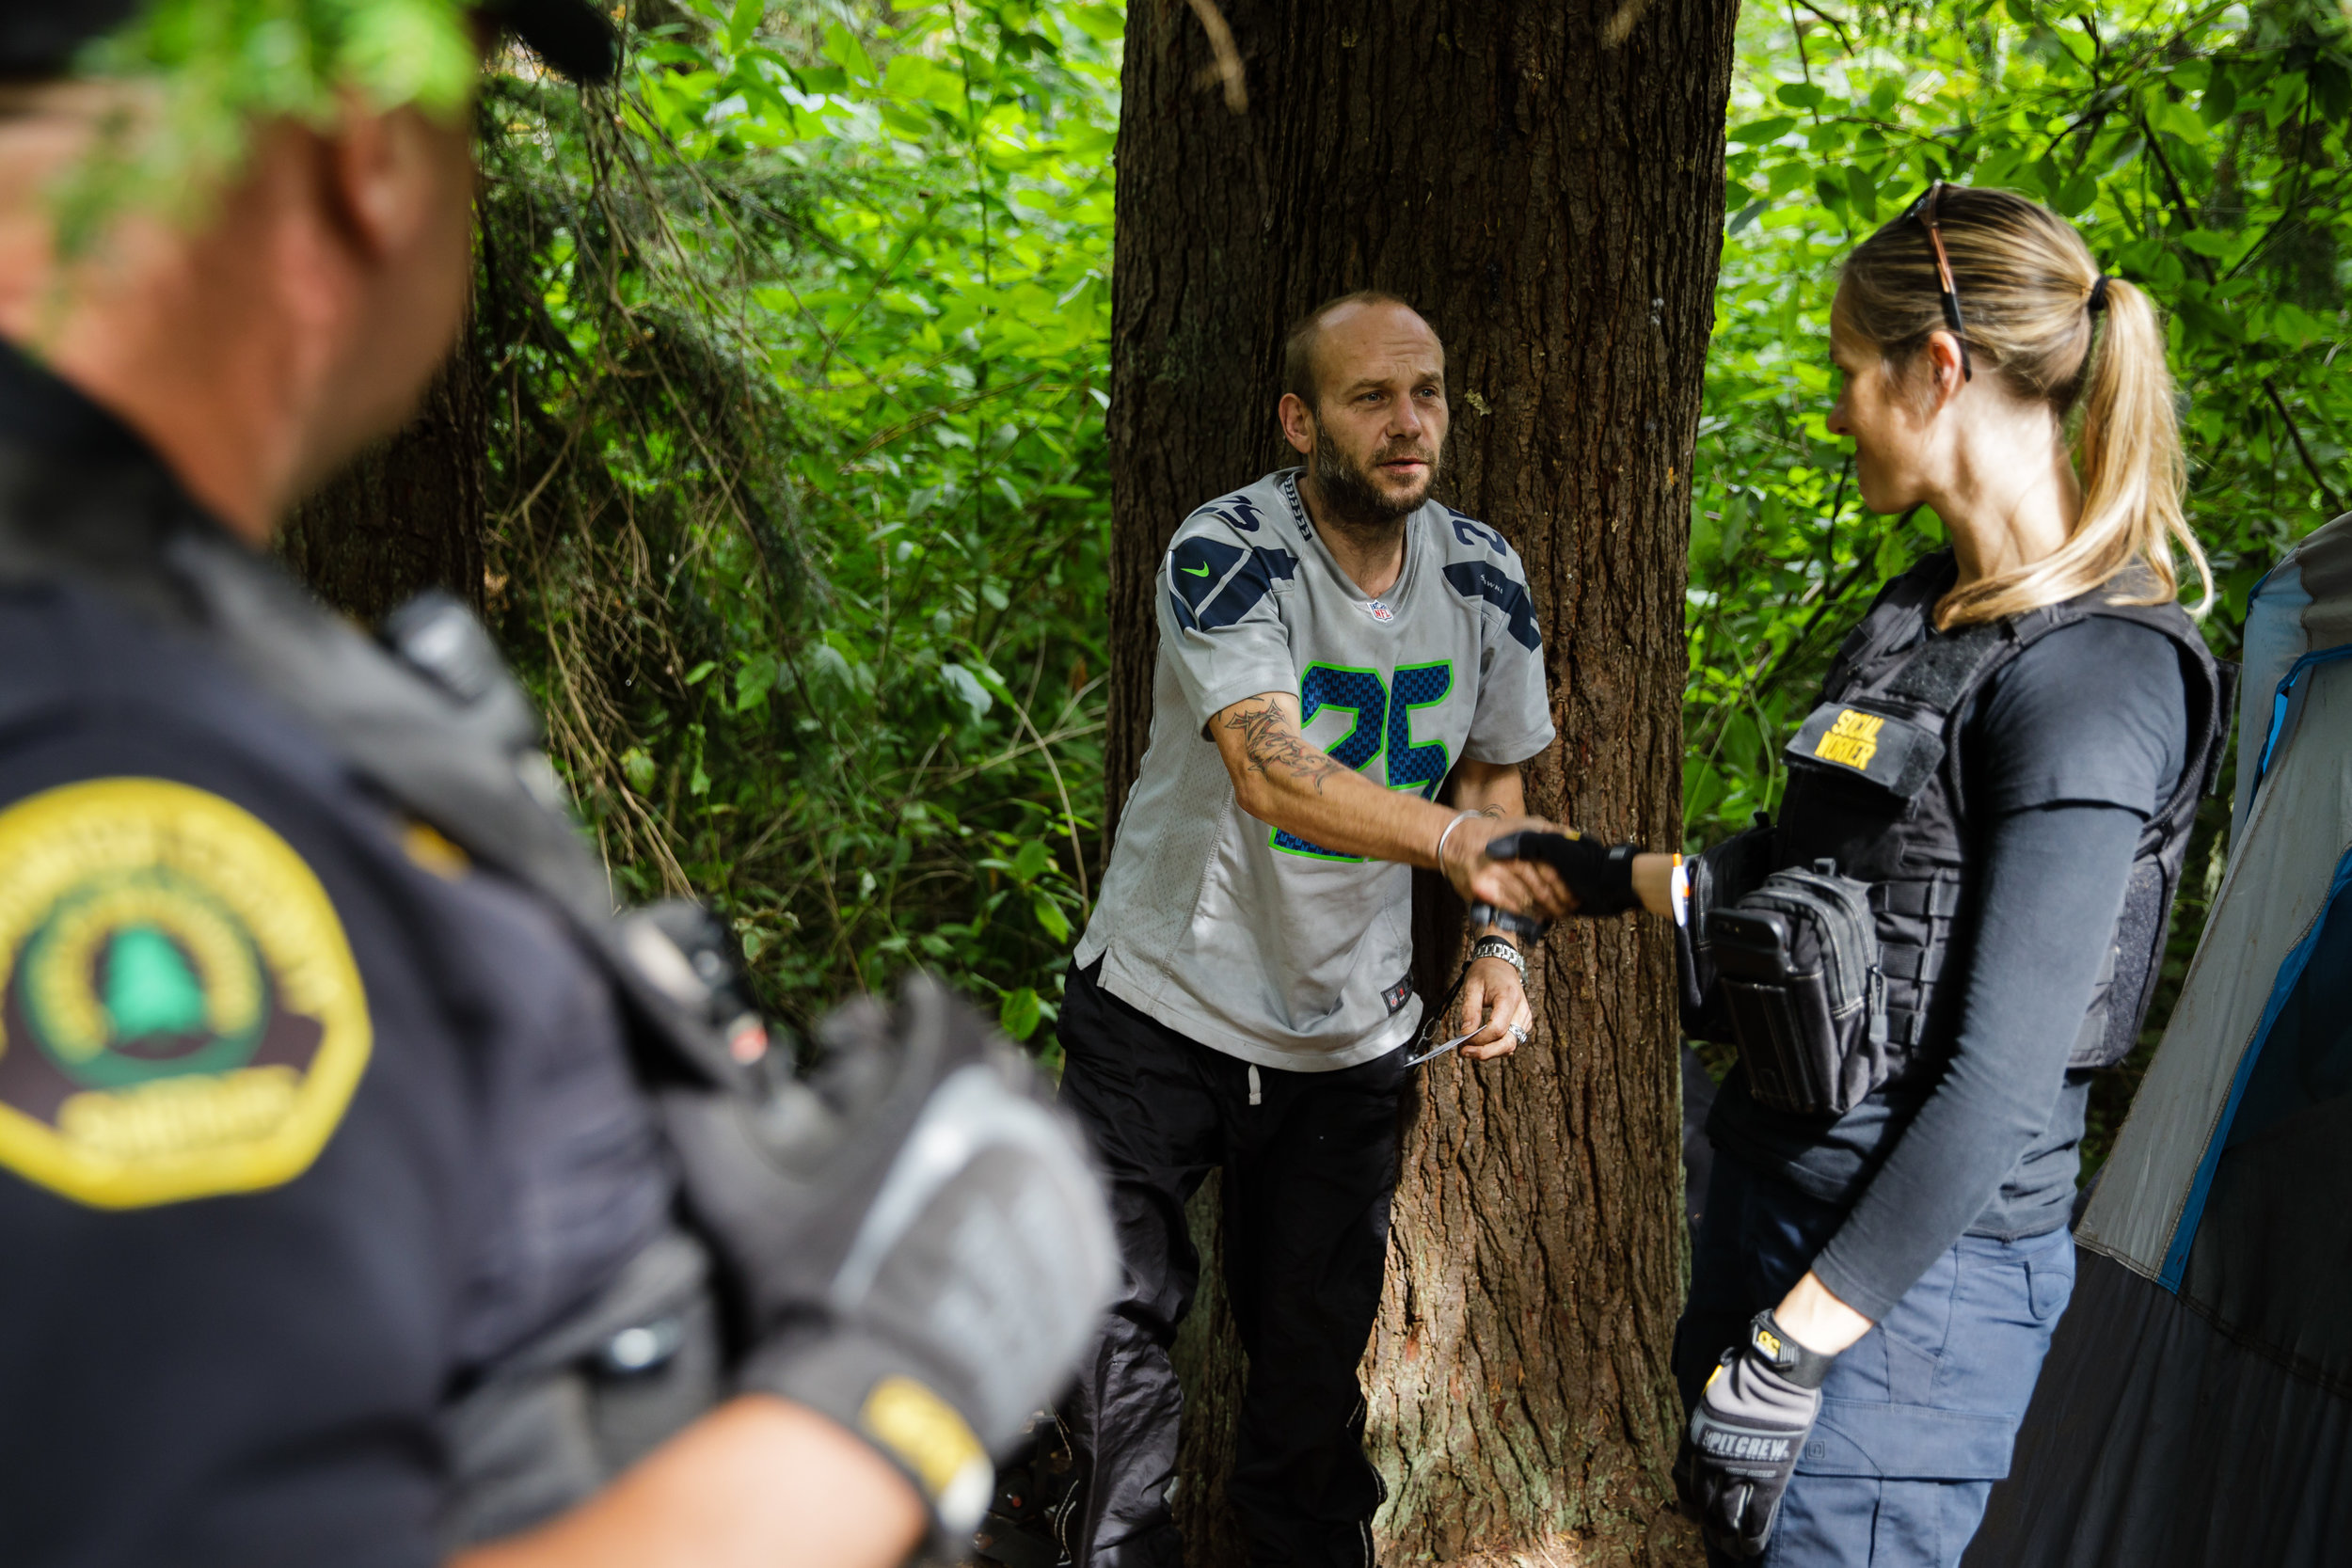 Social worker Lauren Rainbow and police reaching out to man who may be struggling with addiction.   CREDIT: LEAH NASH FOR FINDING FIXES »